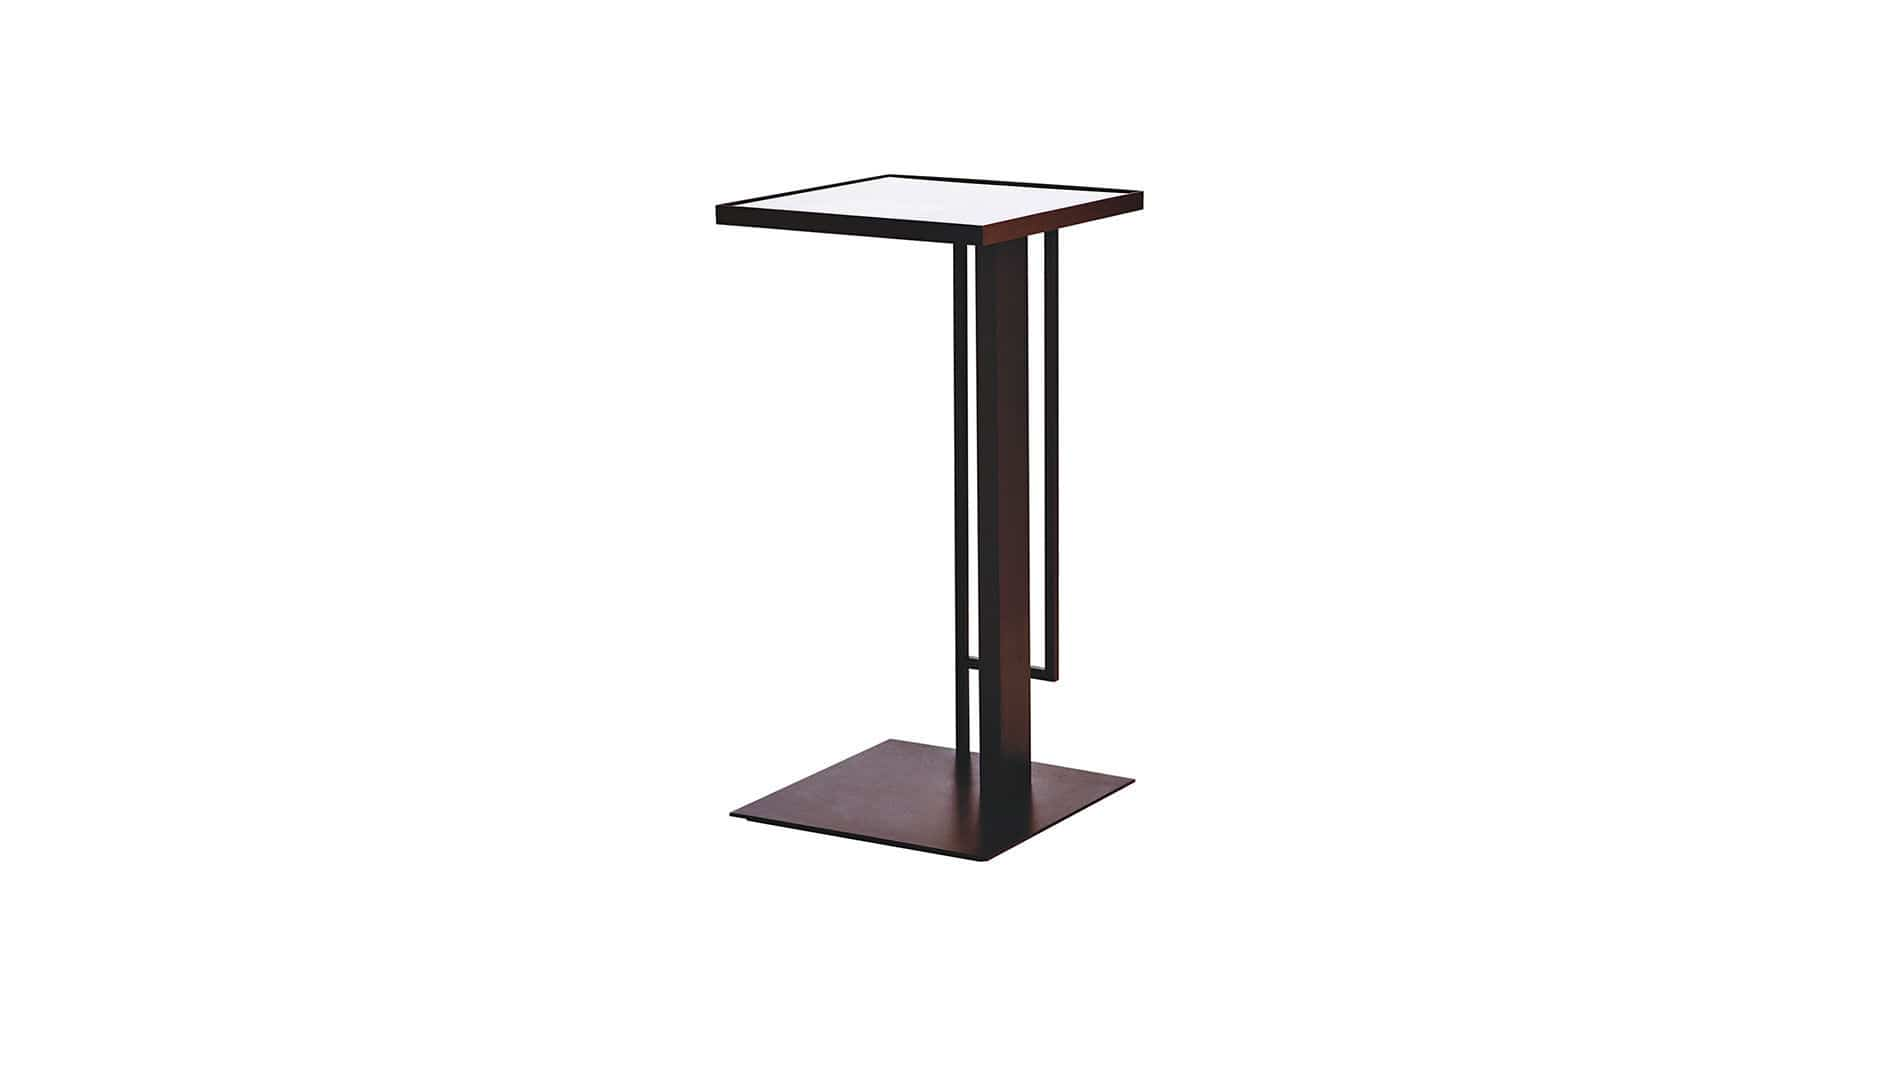 Contemporary High Bar Table / Glass / Stainless Steel / Square ARENA KENKOON